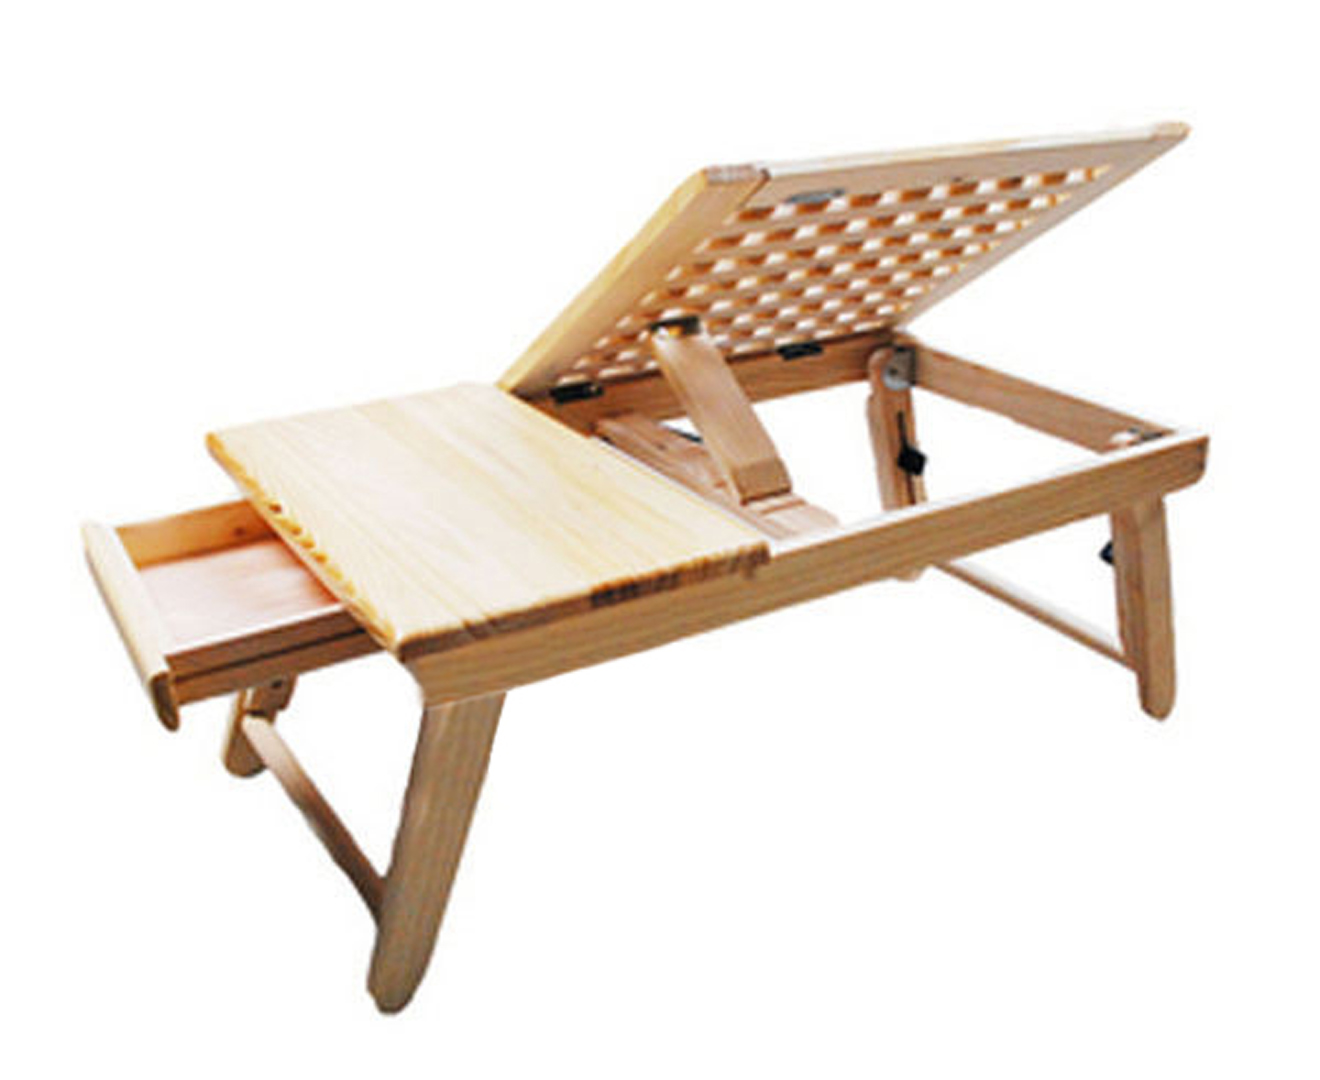 Adjustable Portable Notebook Bed Desk Table Wooden Folding